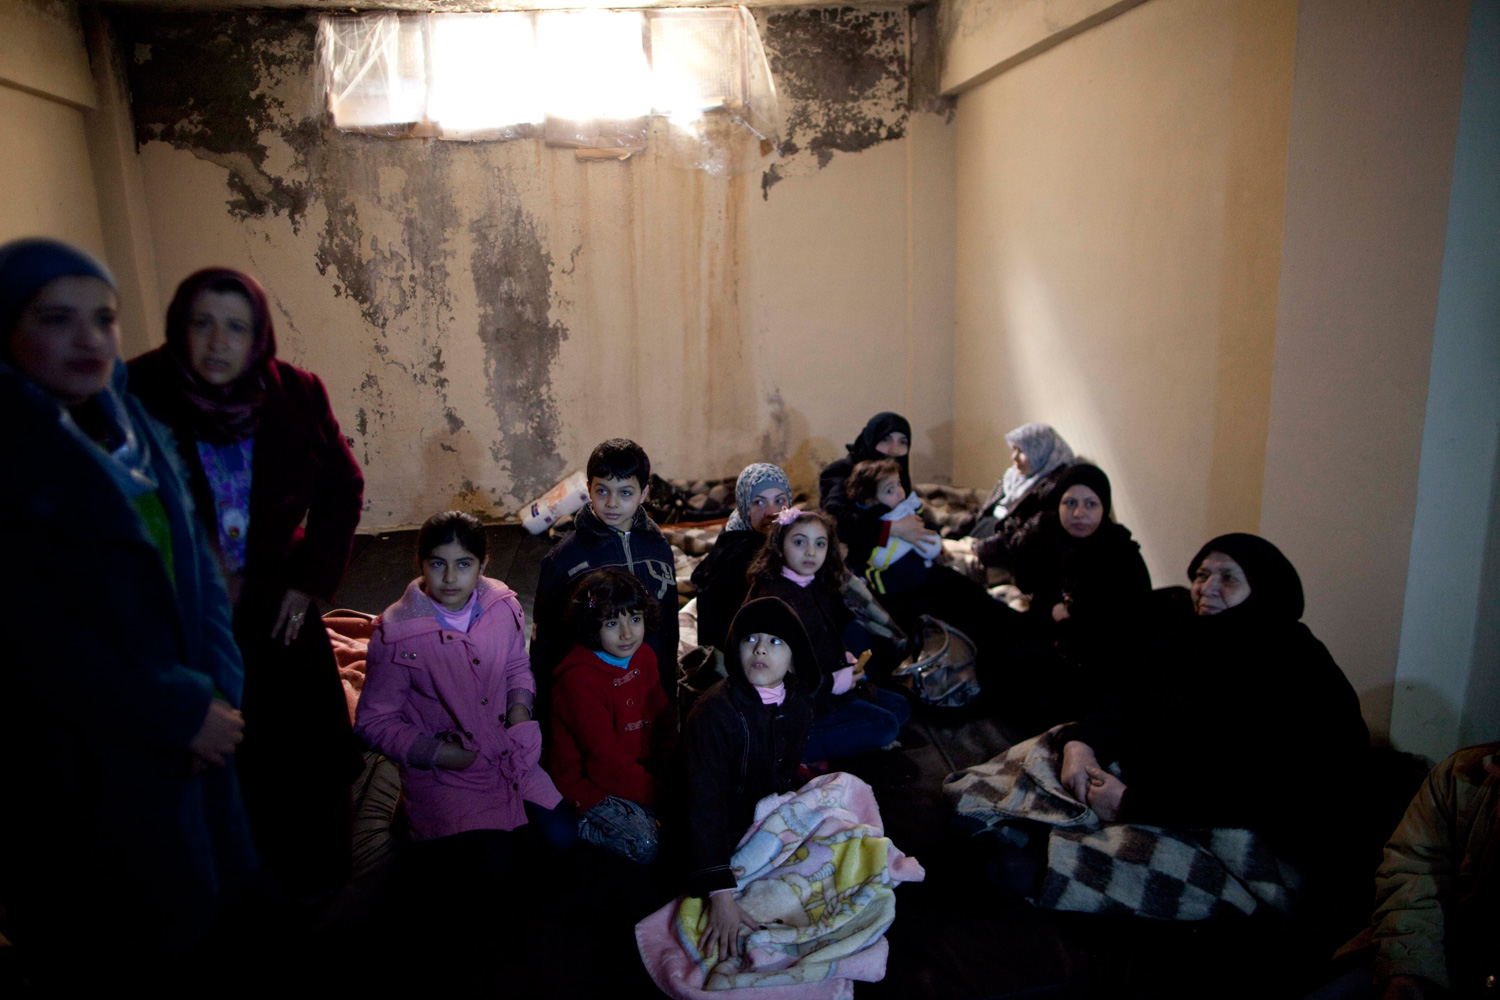 March 10, 2012. Syrian women and children take shelter from fierce fighting between the Free Syrian Army and government troops in Idlib, north Syria.